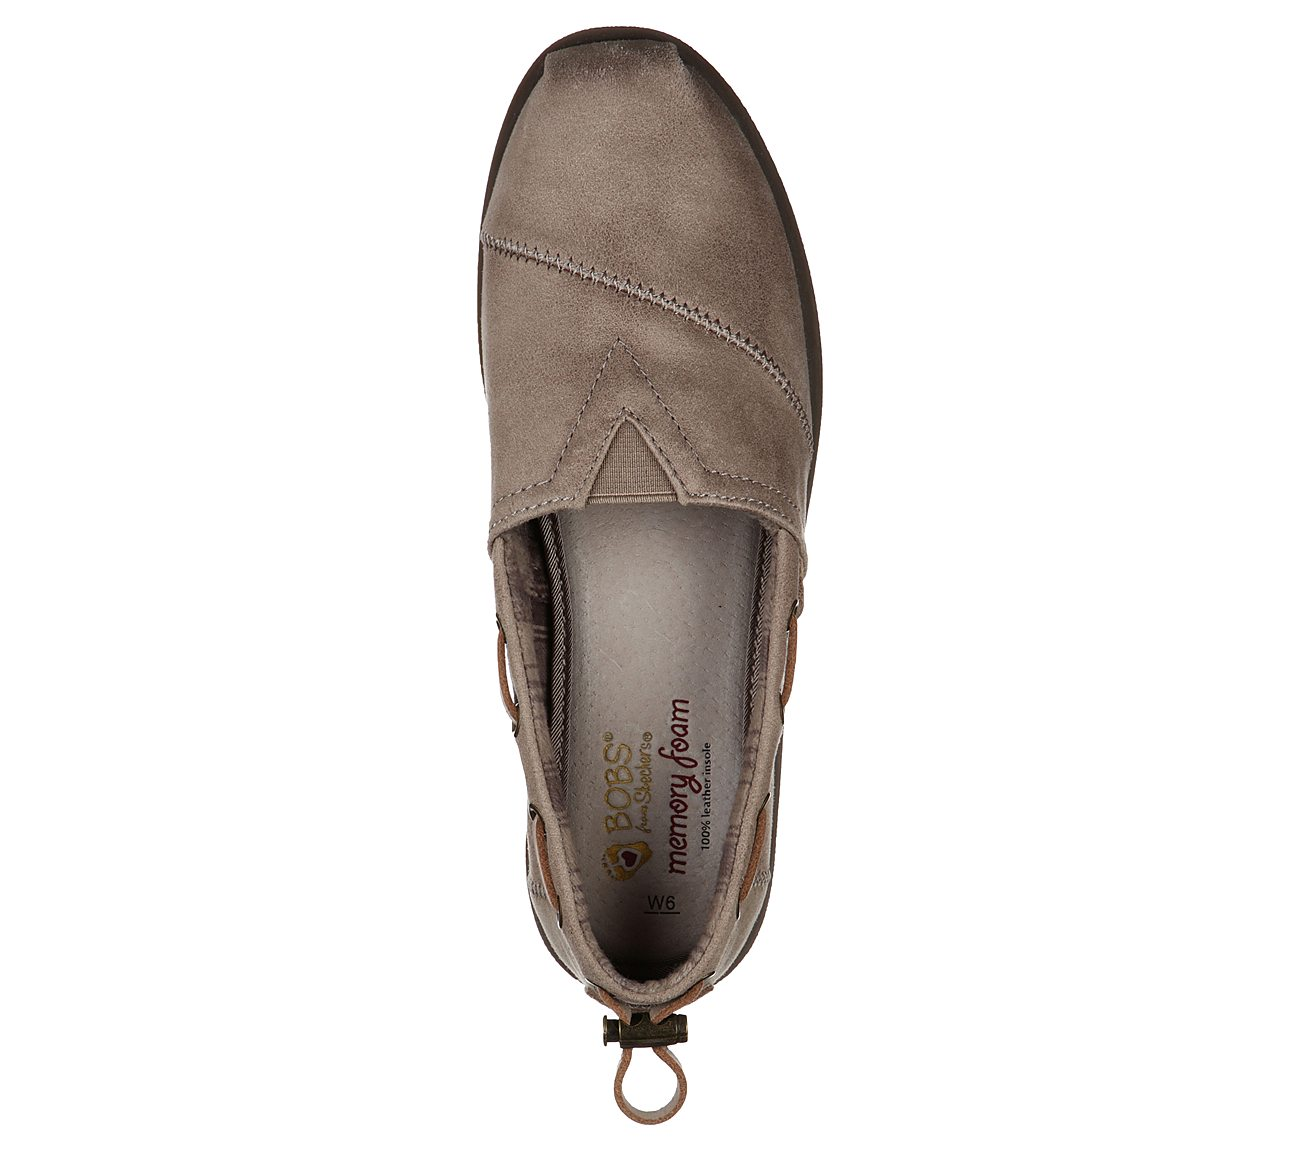 b2b7c243c64a3 Buy SKECHERS BOBS Chill Luxe - Buttoned Up BOBS Shoes only $50.00